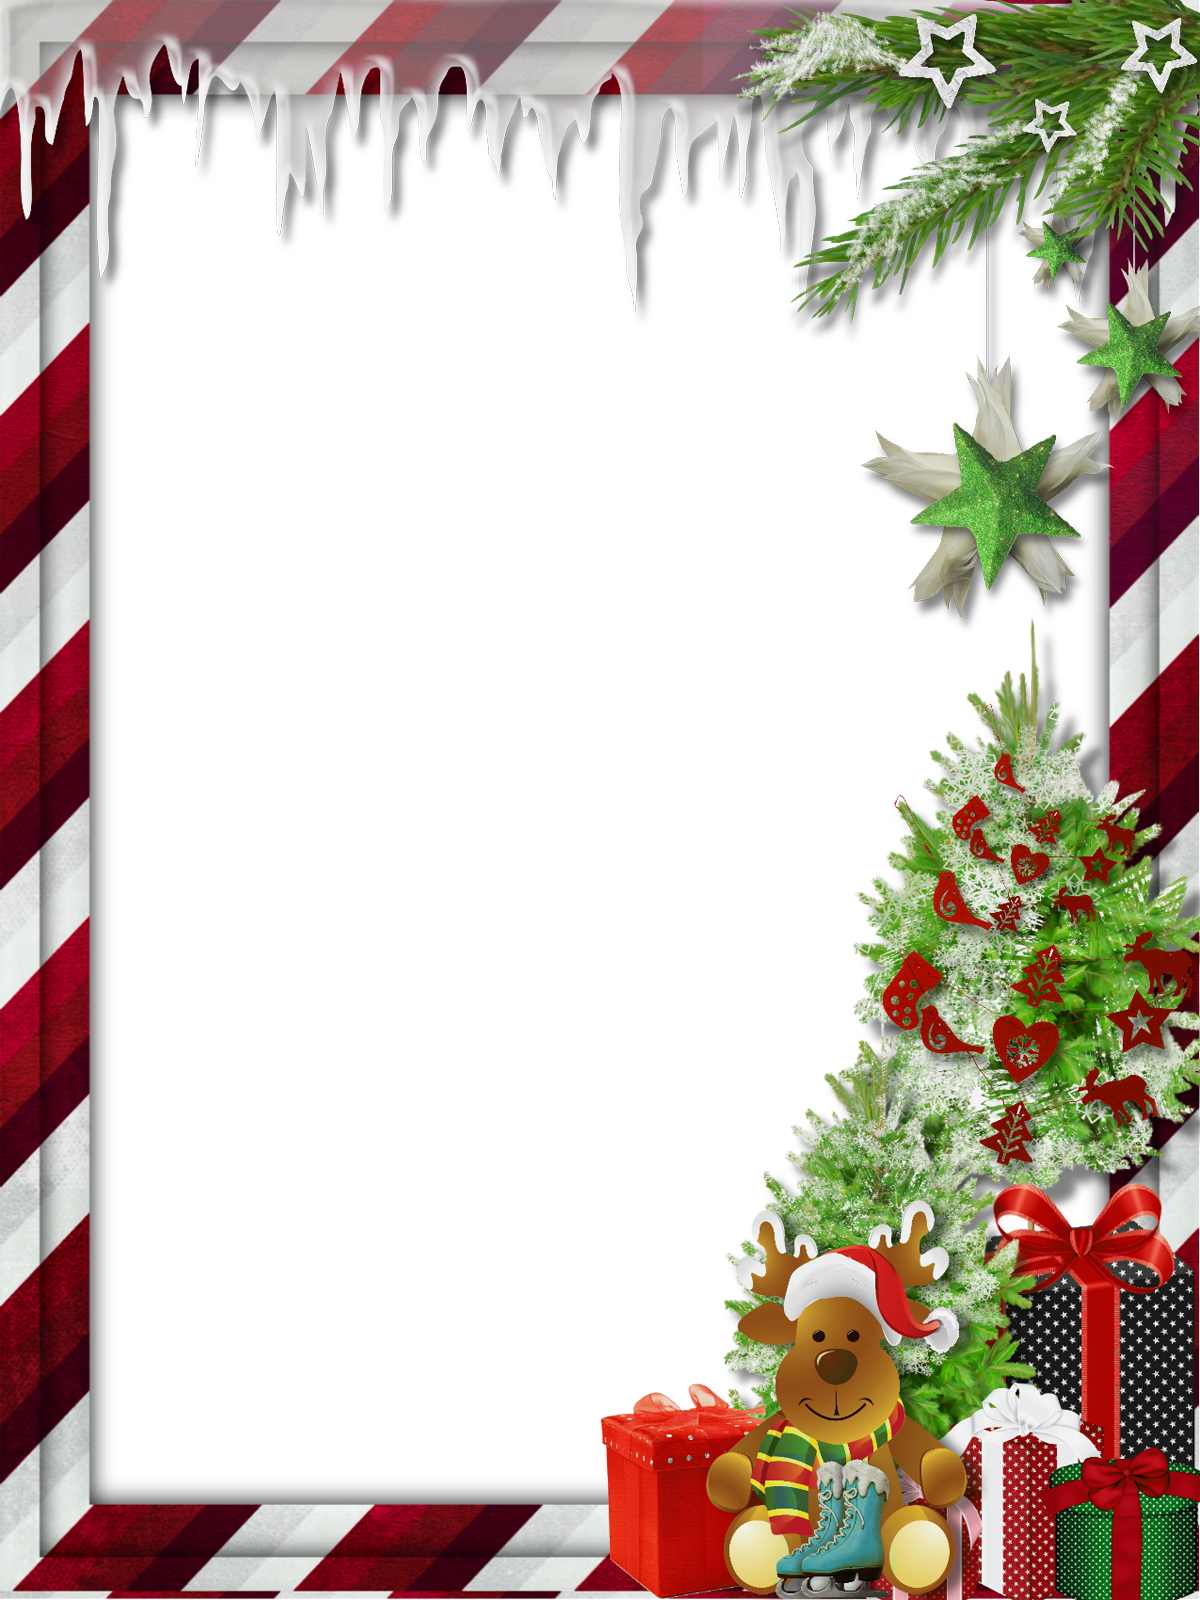 Christmas wallpaper clipart vector free download Transparent Christmas Photo Frame with Cute Reindeer | Gallery ... vector free download